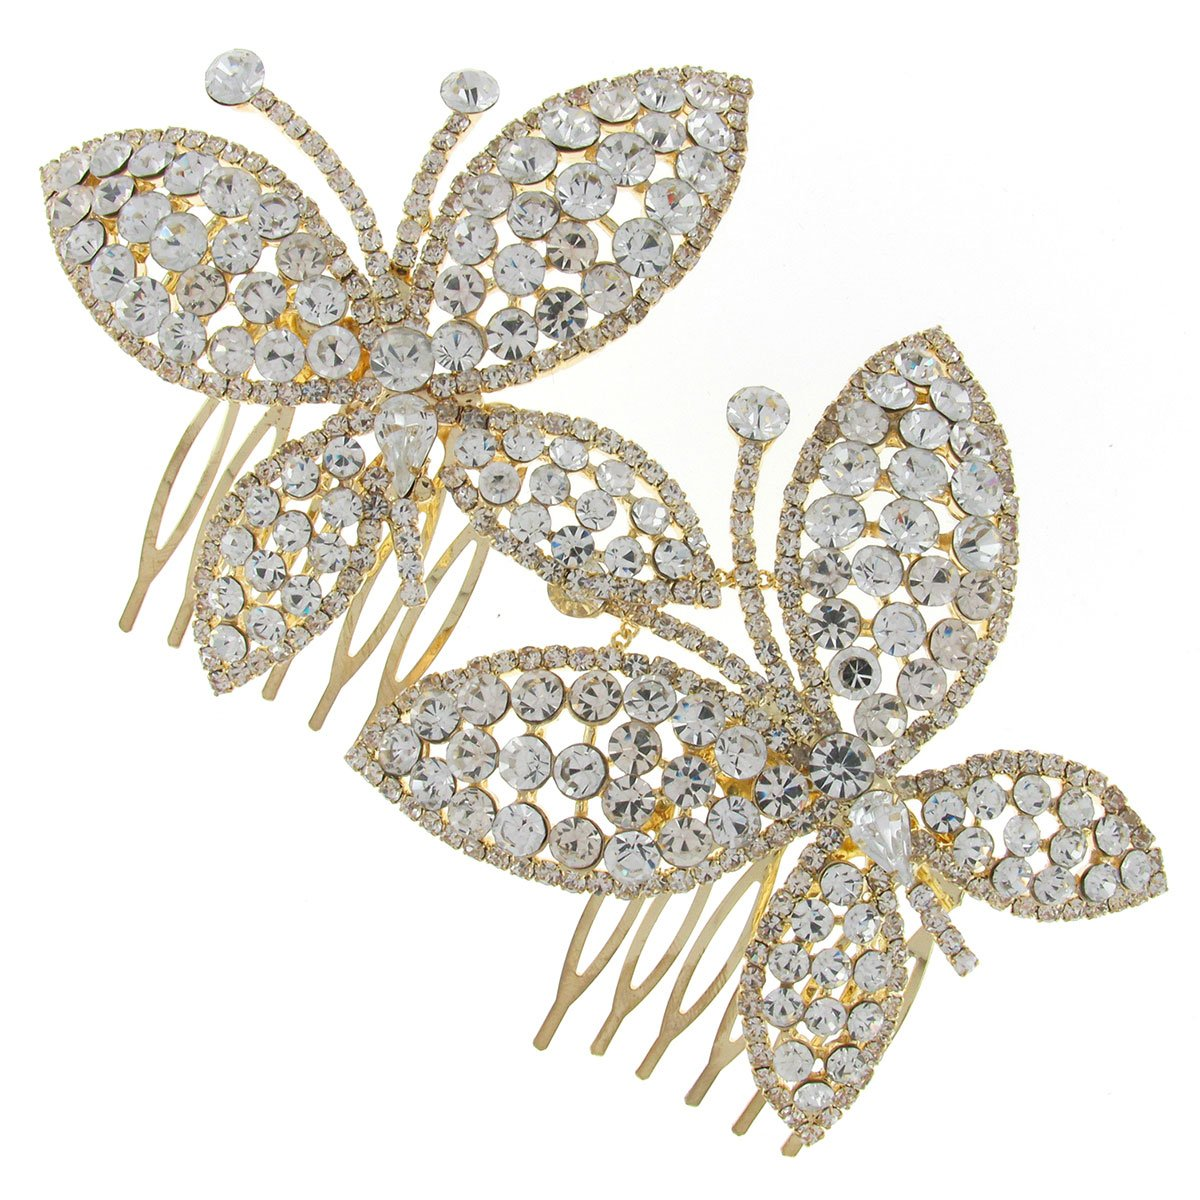 ee09f12e5 Vintage Double Butterfly Swarovski Crystal Gold Bridal Hair Comb Clip:  Amazon.co.uk: Jewellery